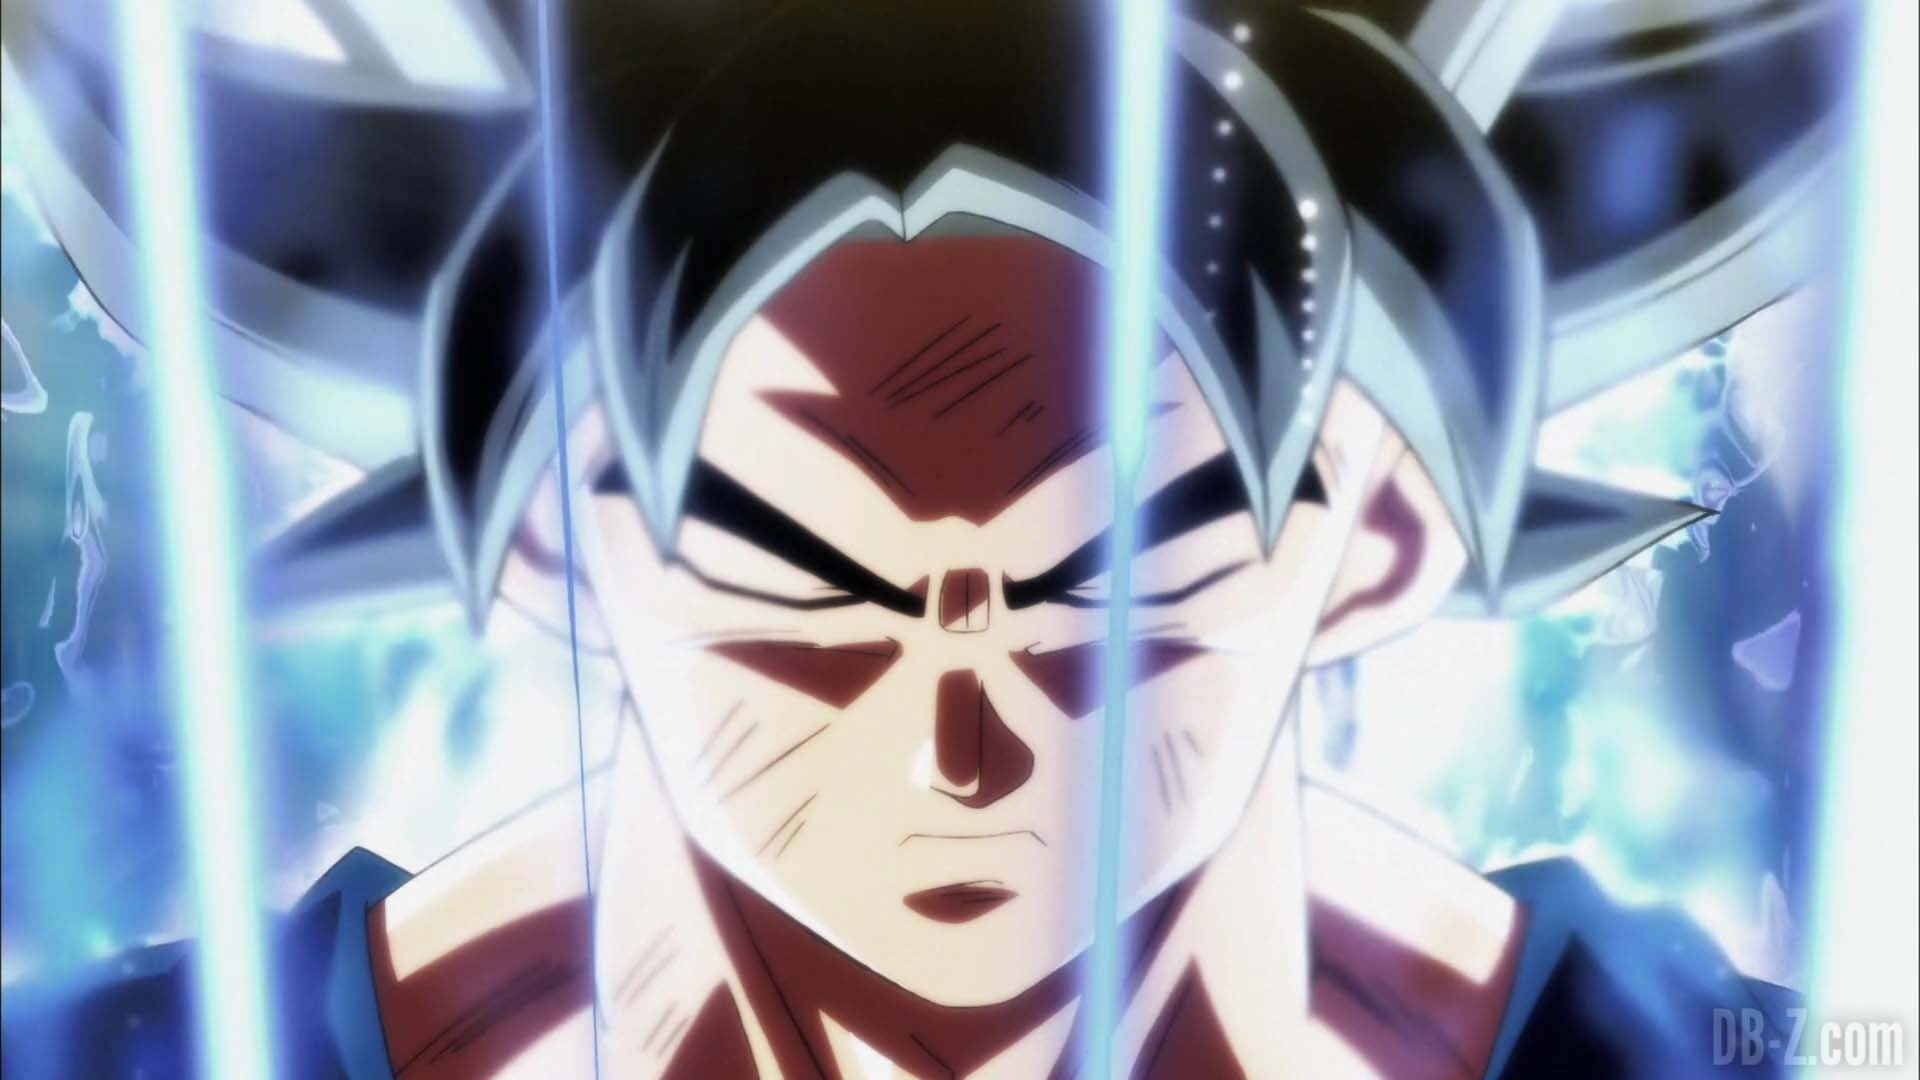 90 Goku Ultra Instinct Mastered Wallpapers On Wallpapersafari